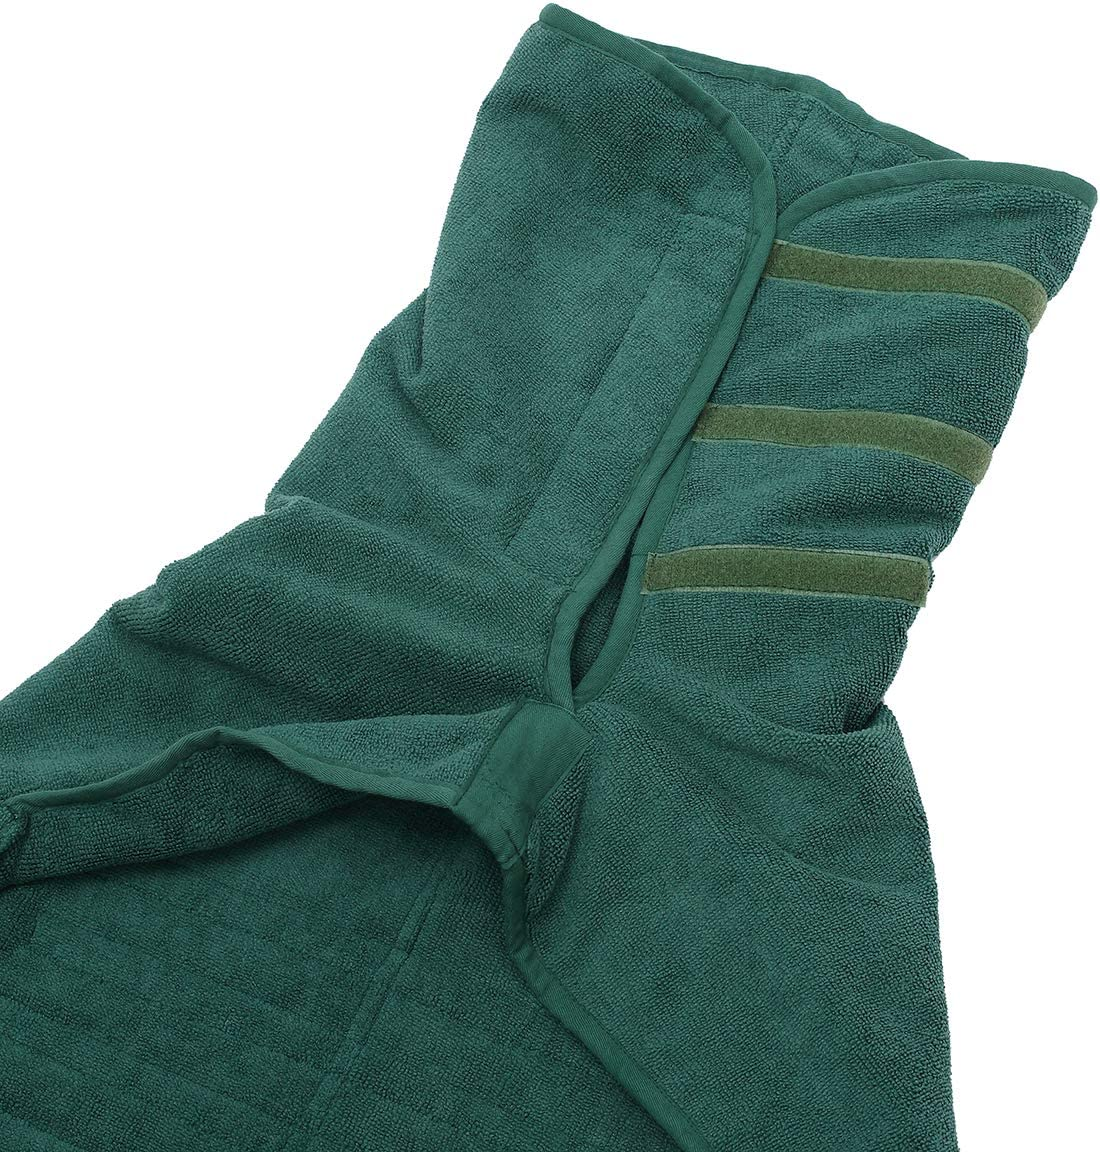 XL Green Pet towel microfibre dog bath robe anxiety relief jacket vest design keep calm wrap vest fit for xs small medium large dogs